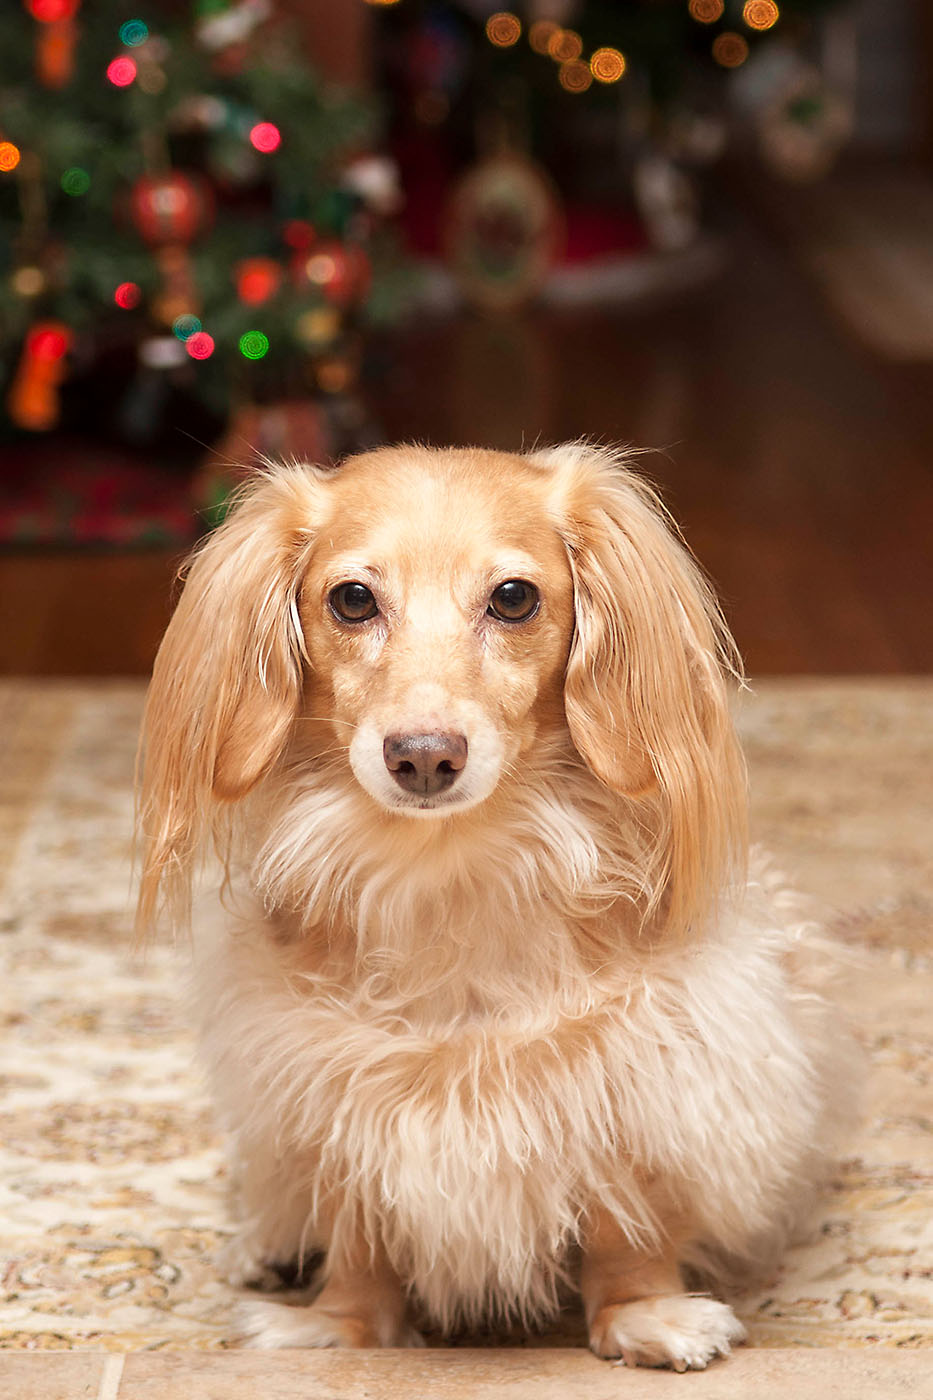 light-color, longhair dachshund